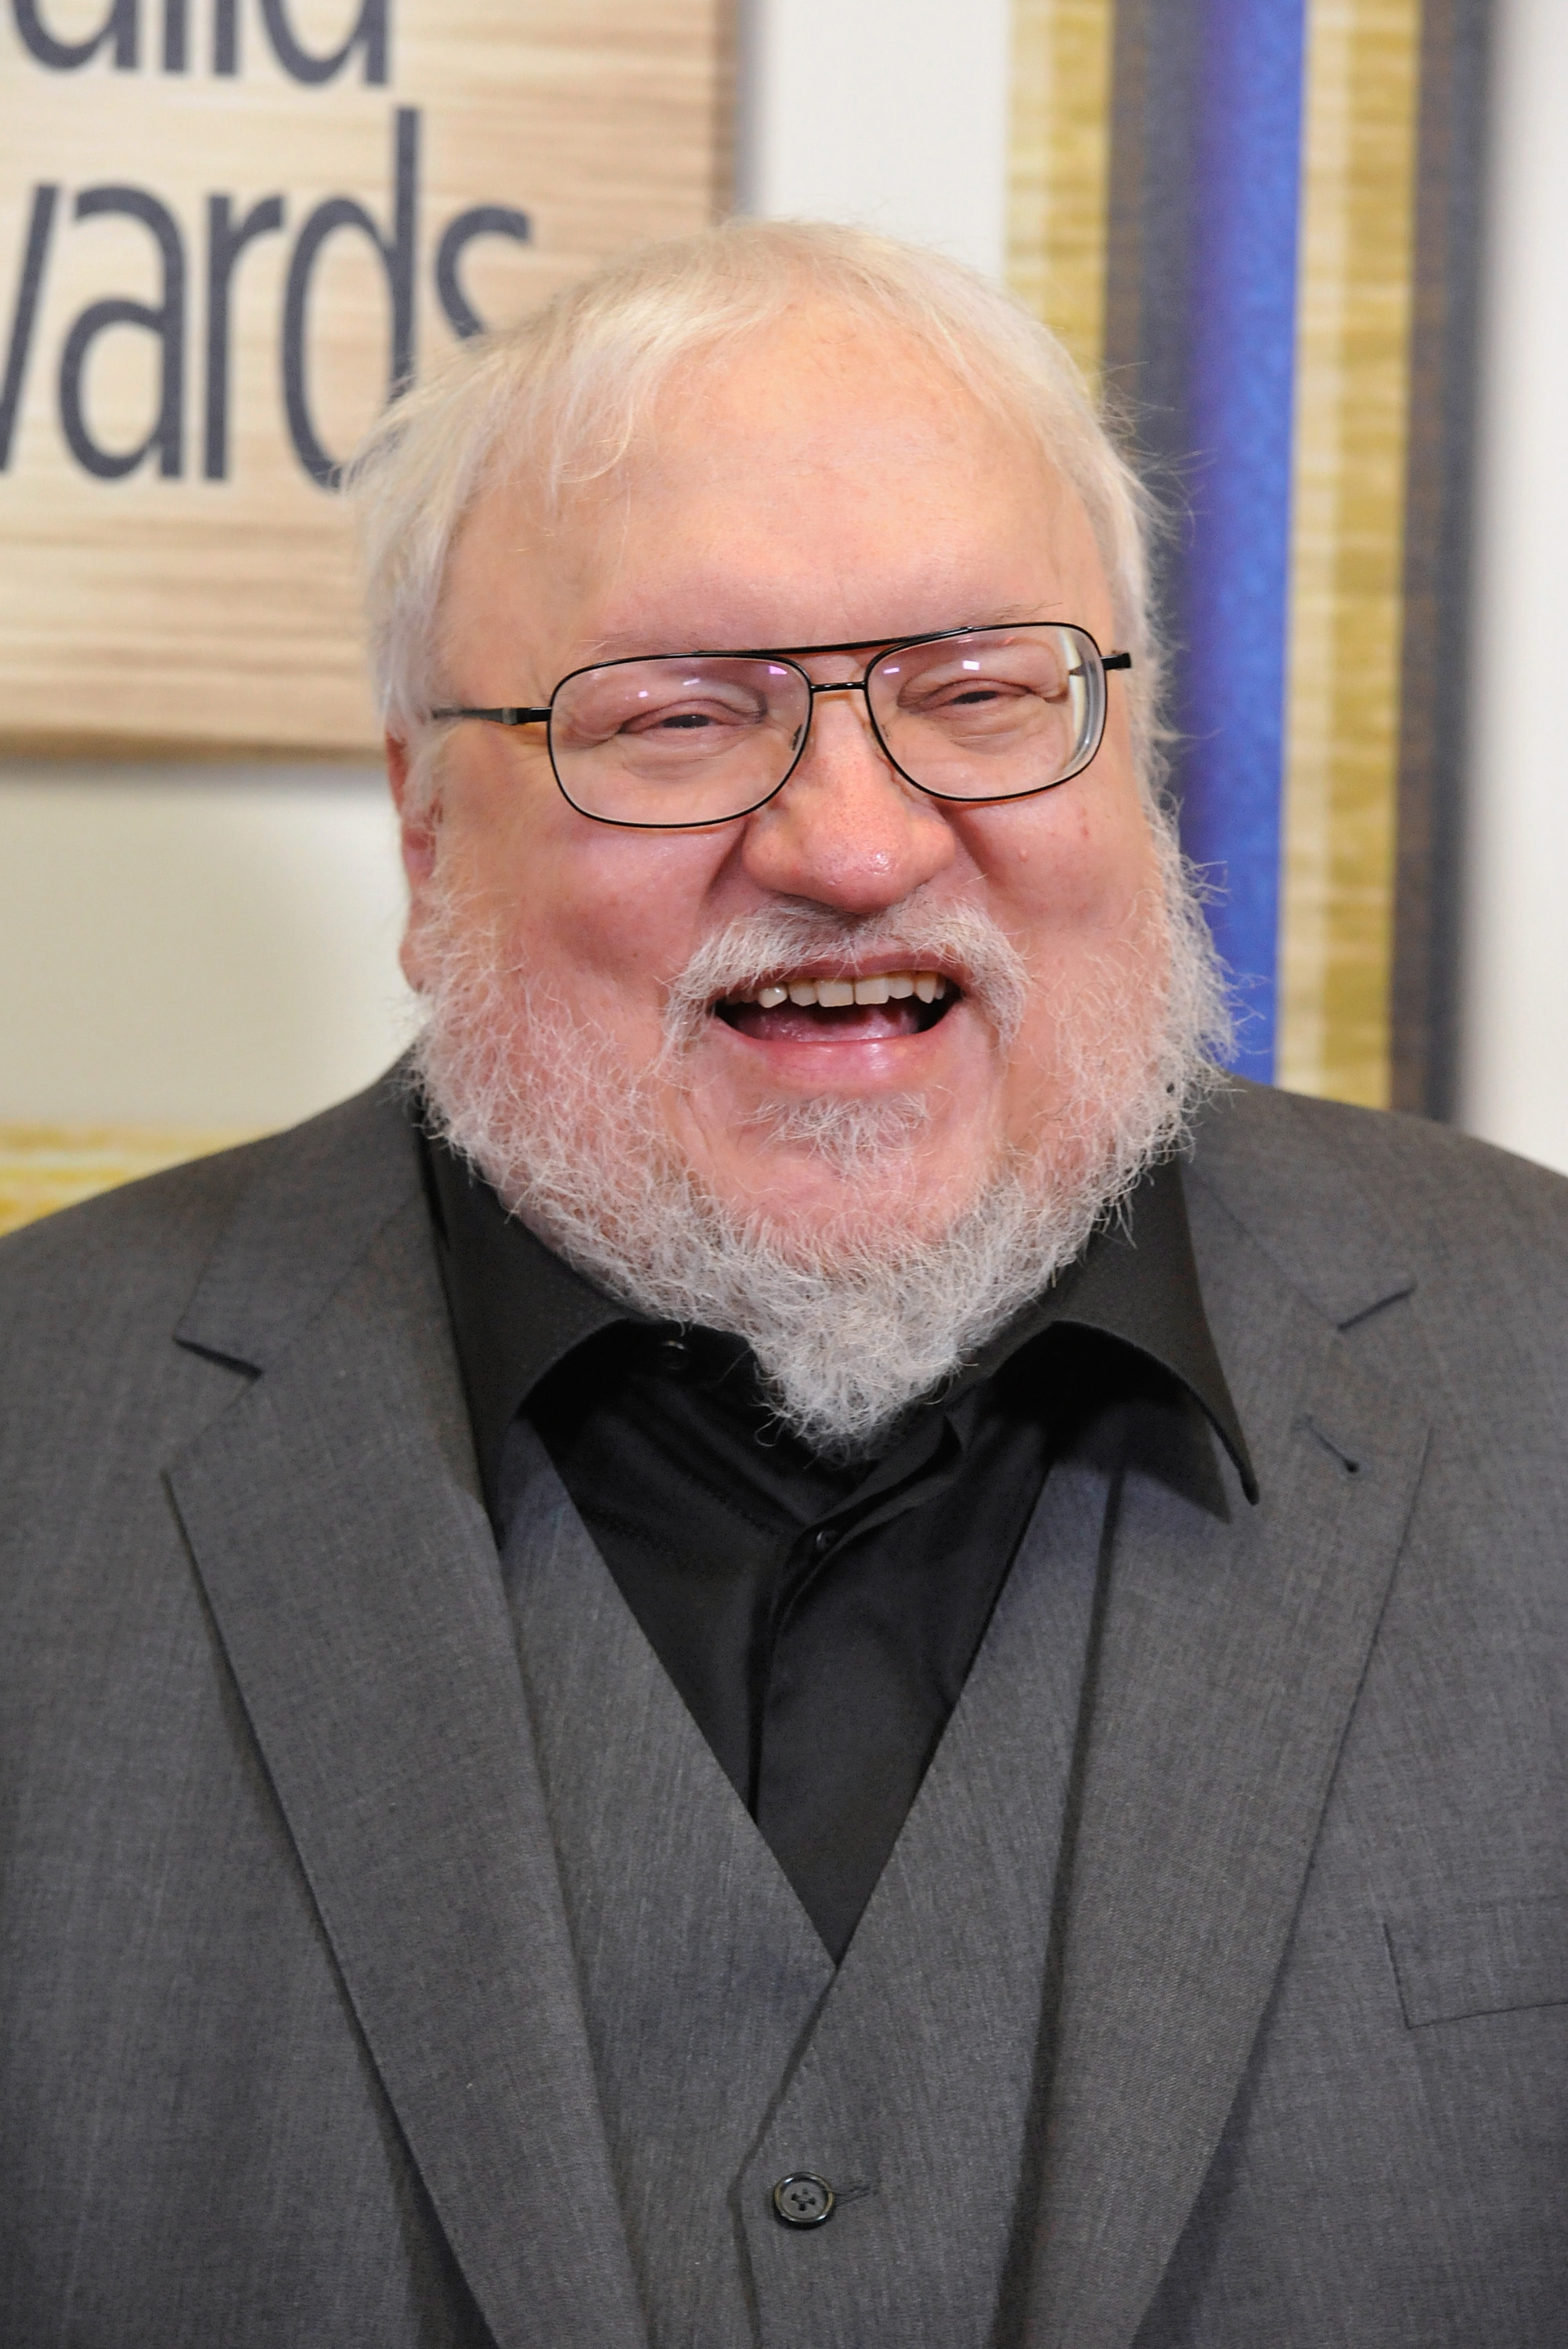 Writer George R.R. Martin attends the 2015 Writers Guild Awards Ceremony at the Hyatt Regency Century Plaza on Feb.14, 2015 in Los Angeles.